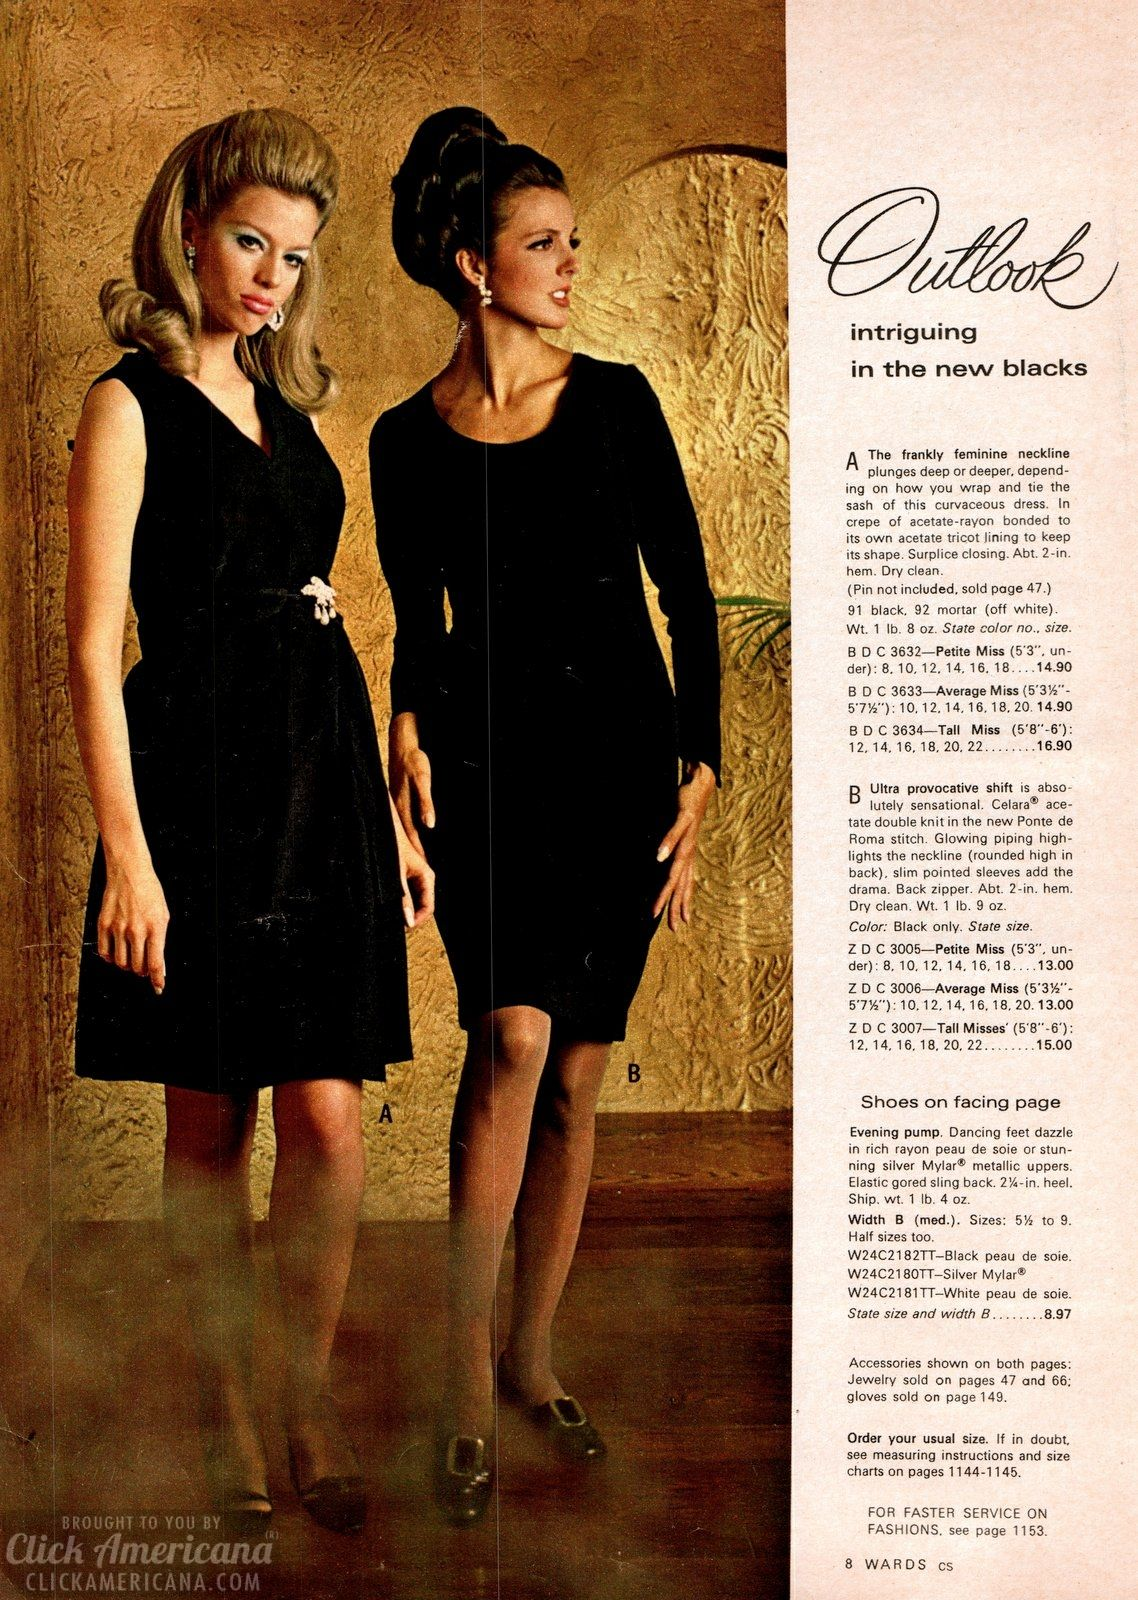 Simple And Stunning 60s Skirts Dresses From The 1968 Wards Catalog Dresses Stunning Dresses Dress Skirt [ 1600 x 1138 Pixel ]